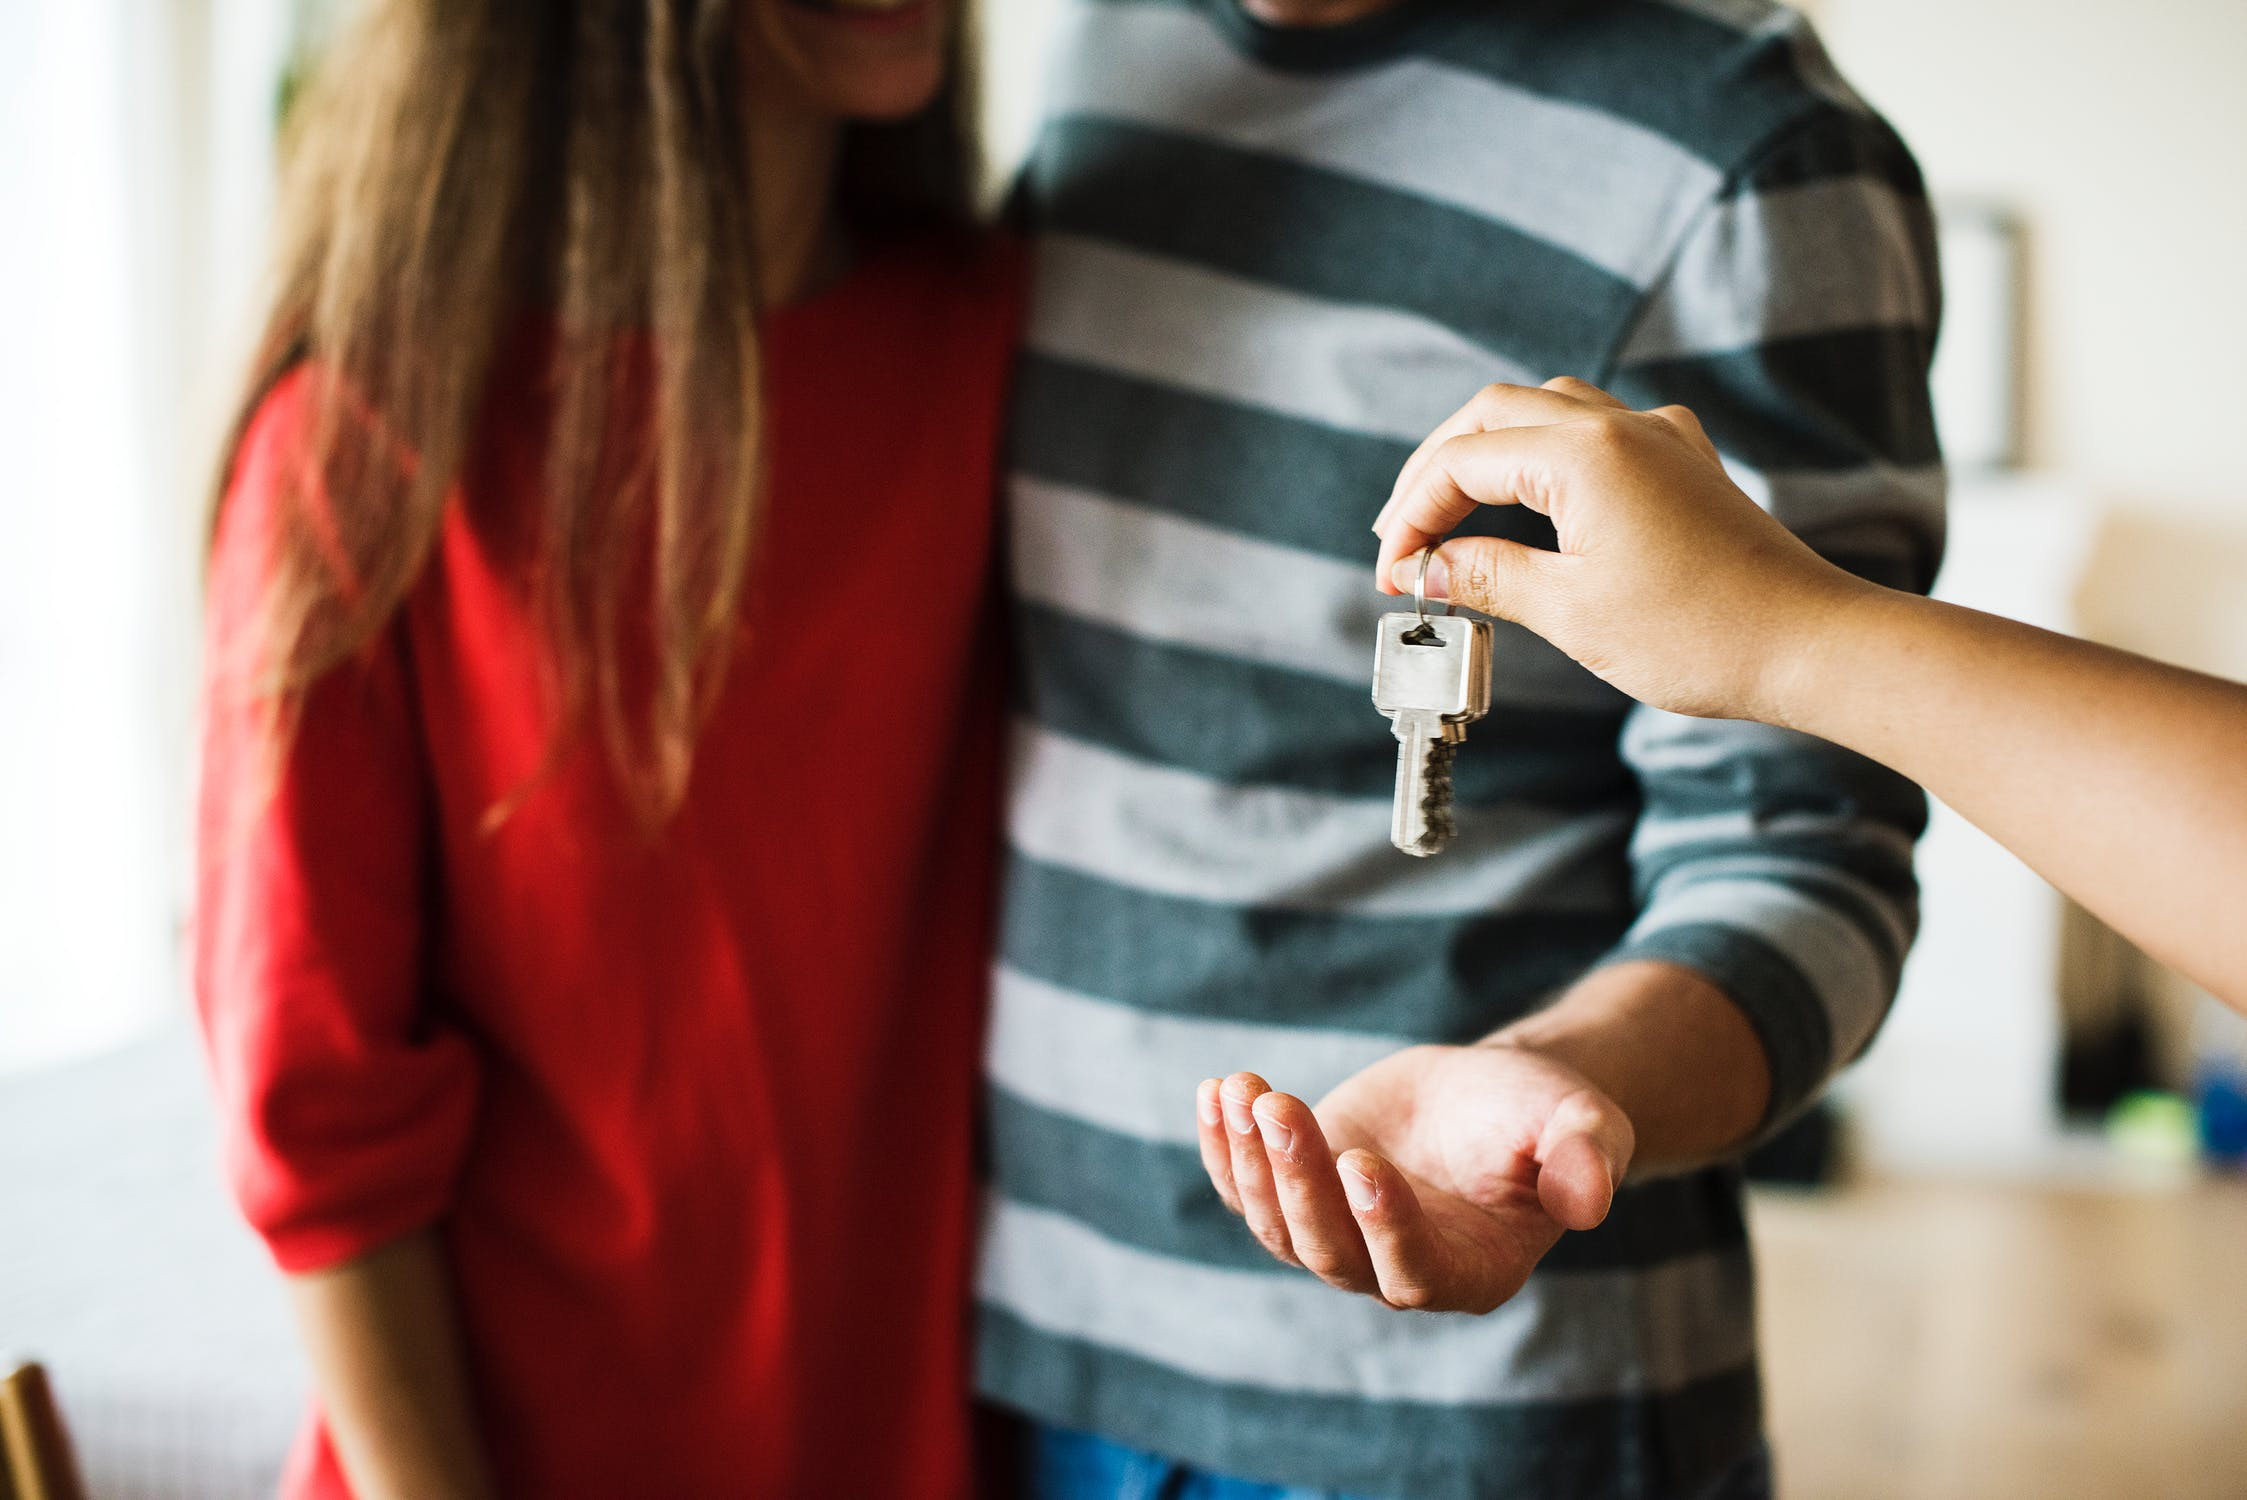 Couple getting the keys to a house